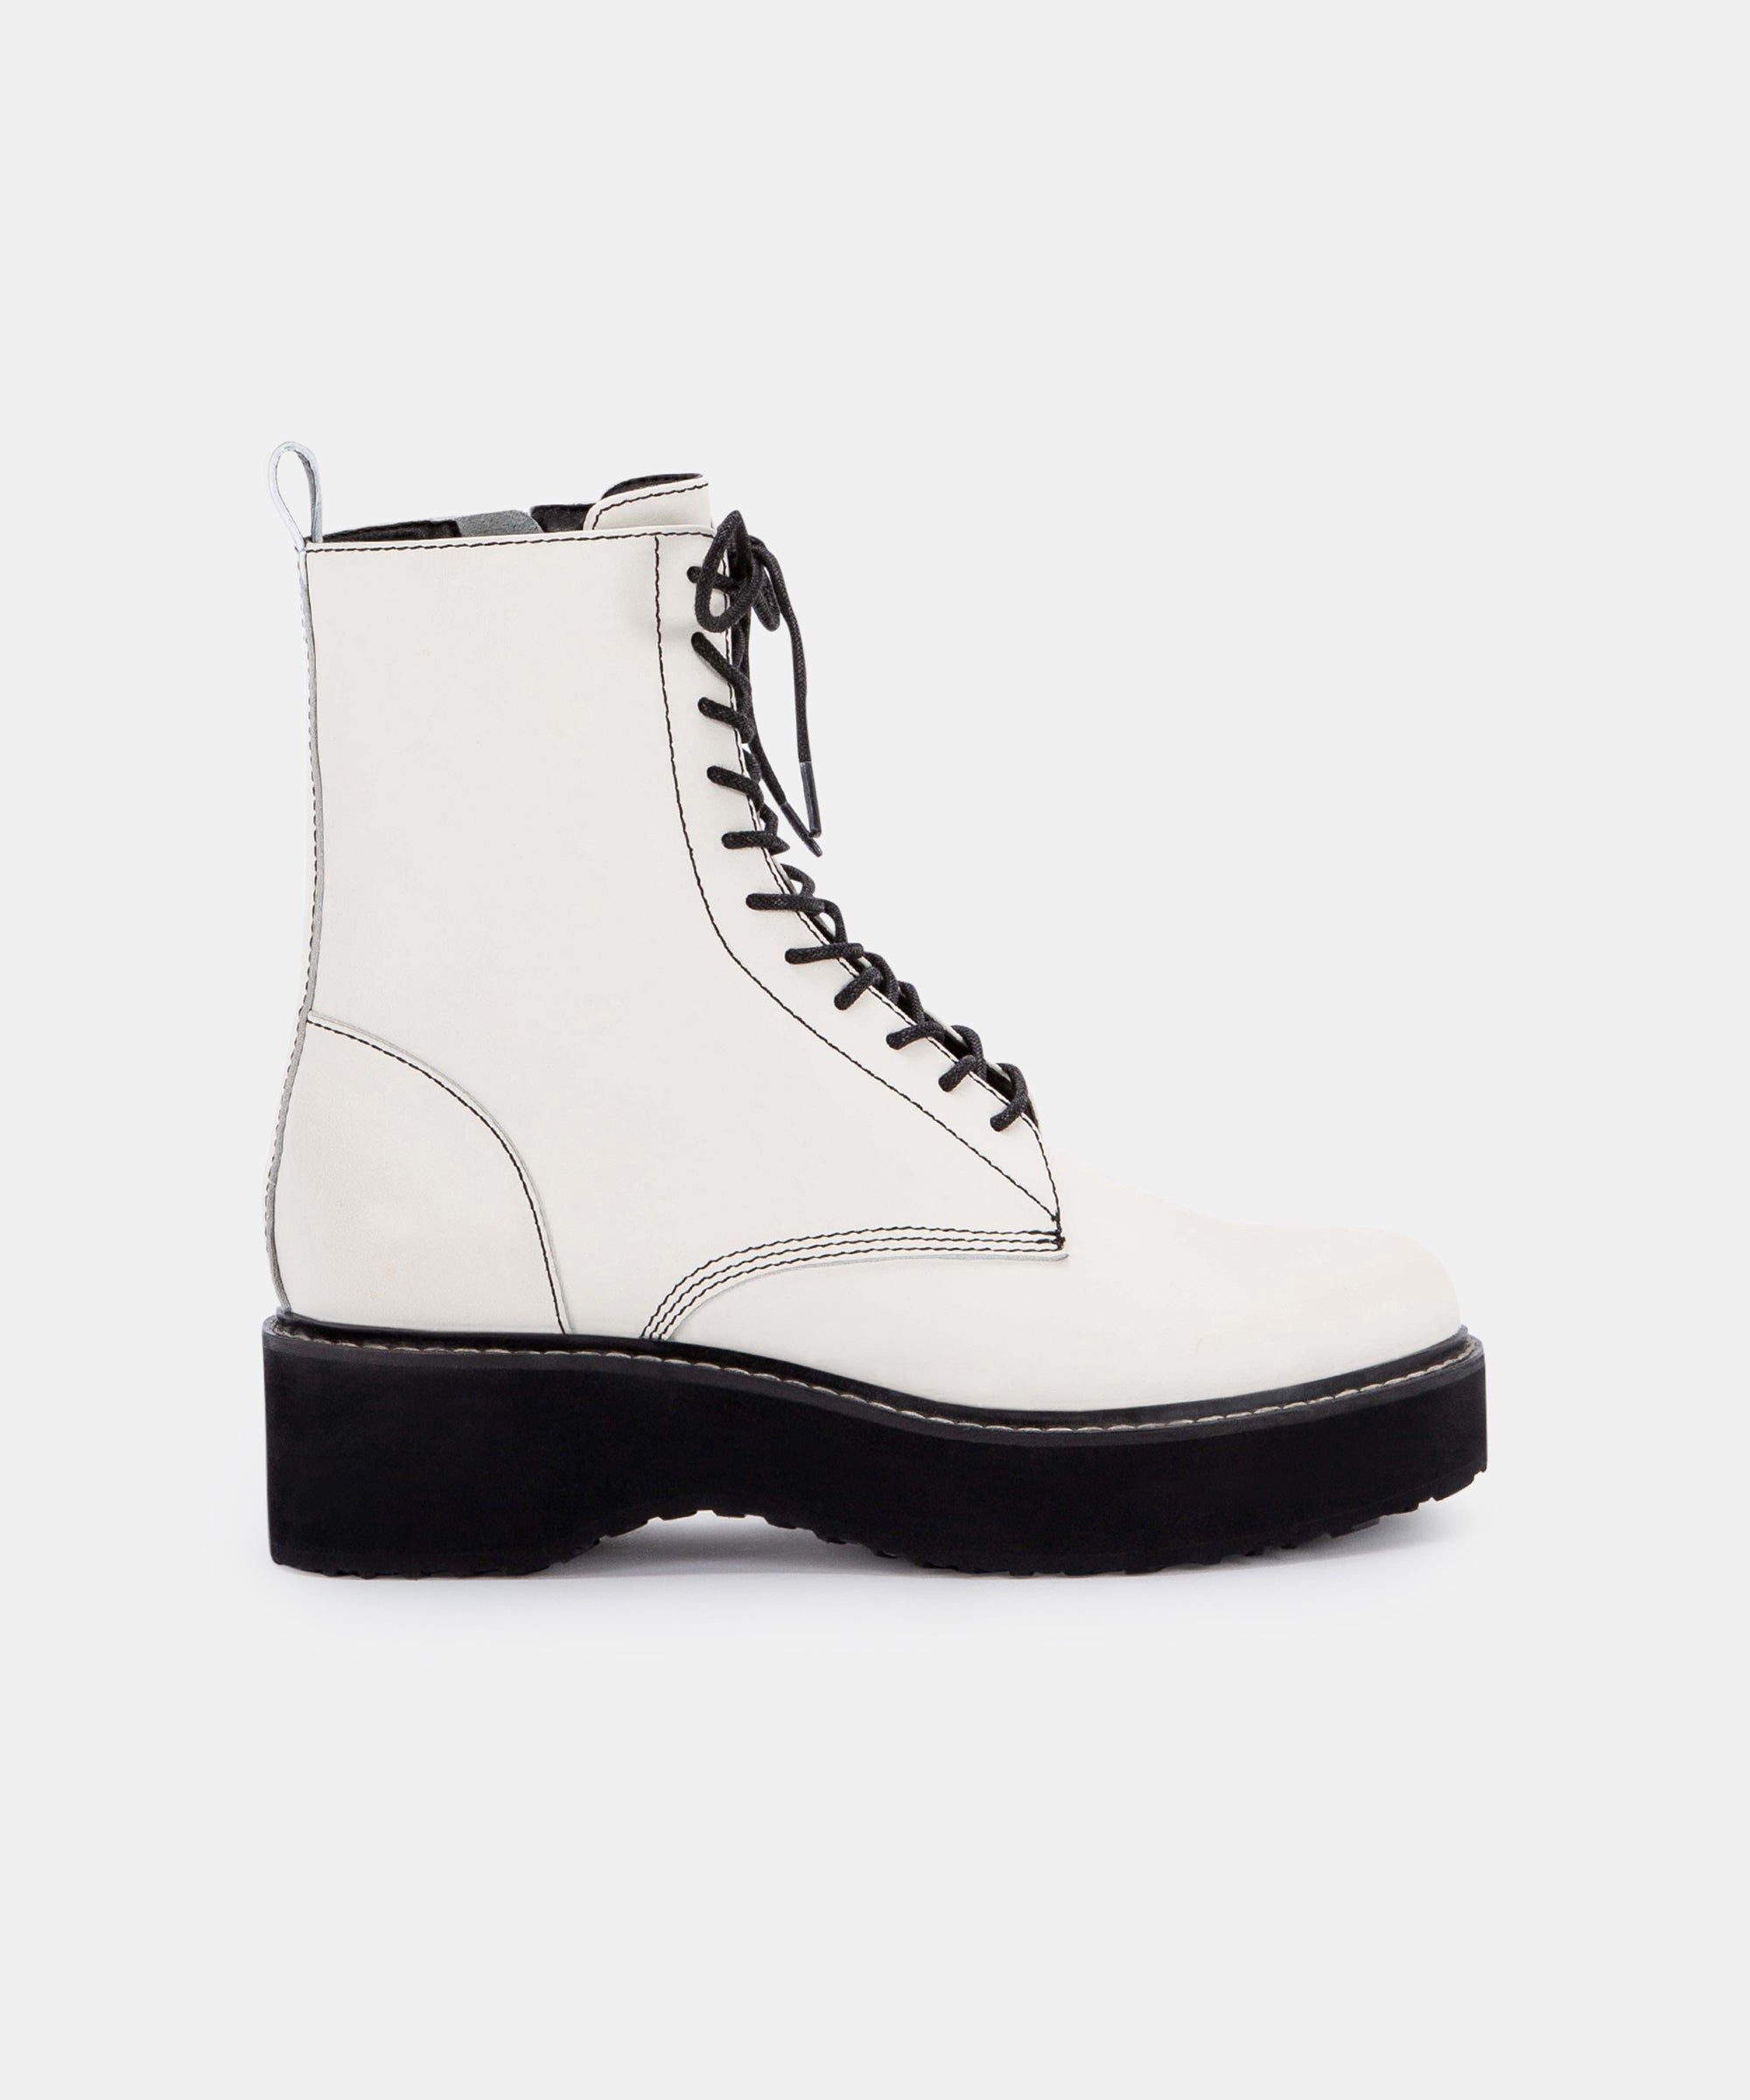 VELA BOOTS IN OFF WHITE LEATHER – Dolce